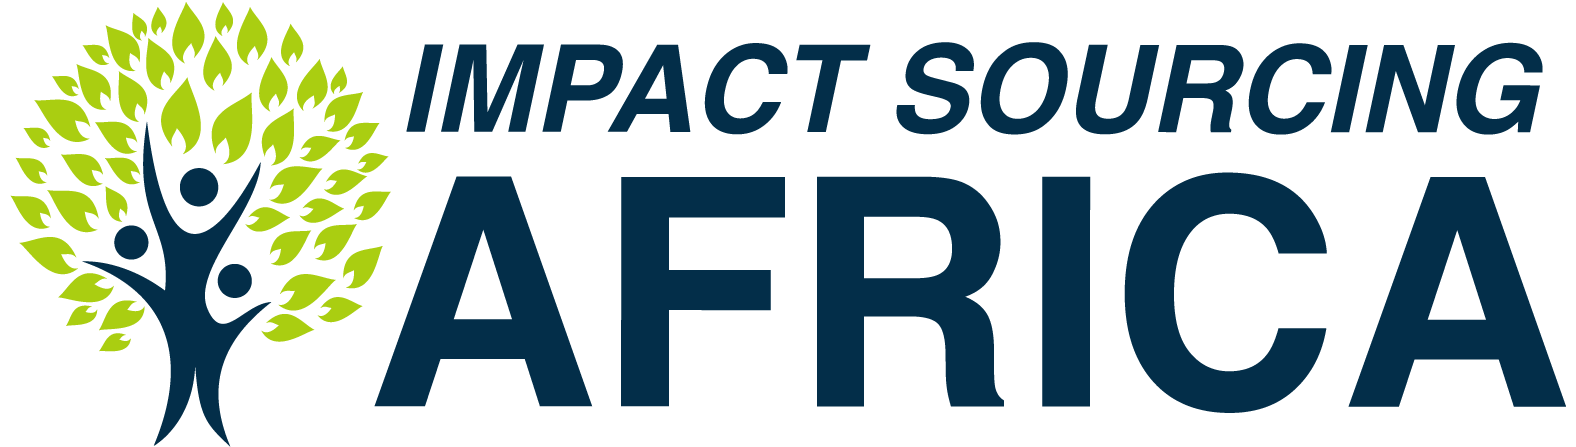 Impact Sourcing Africa